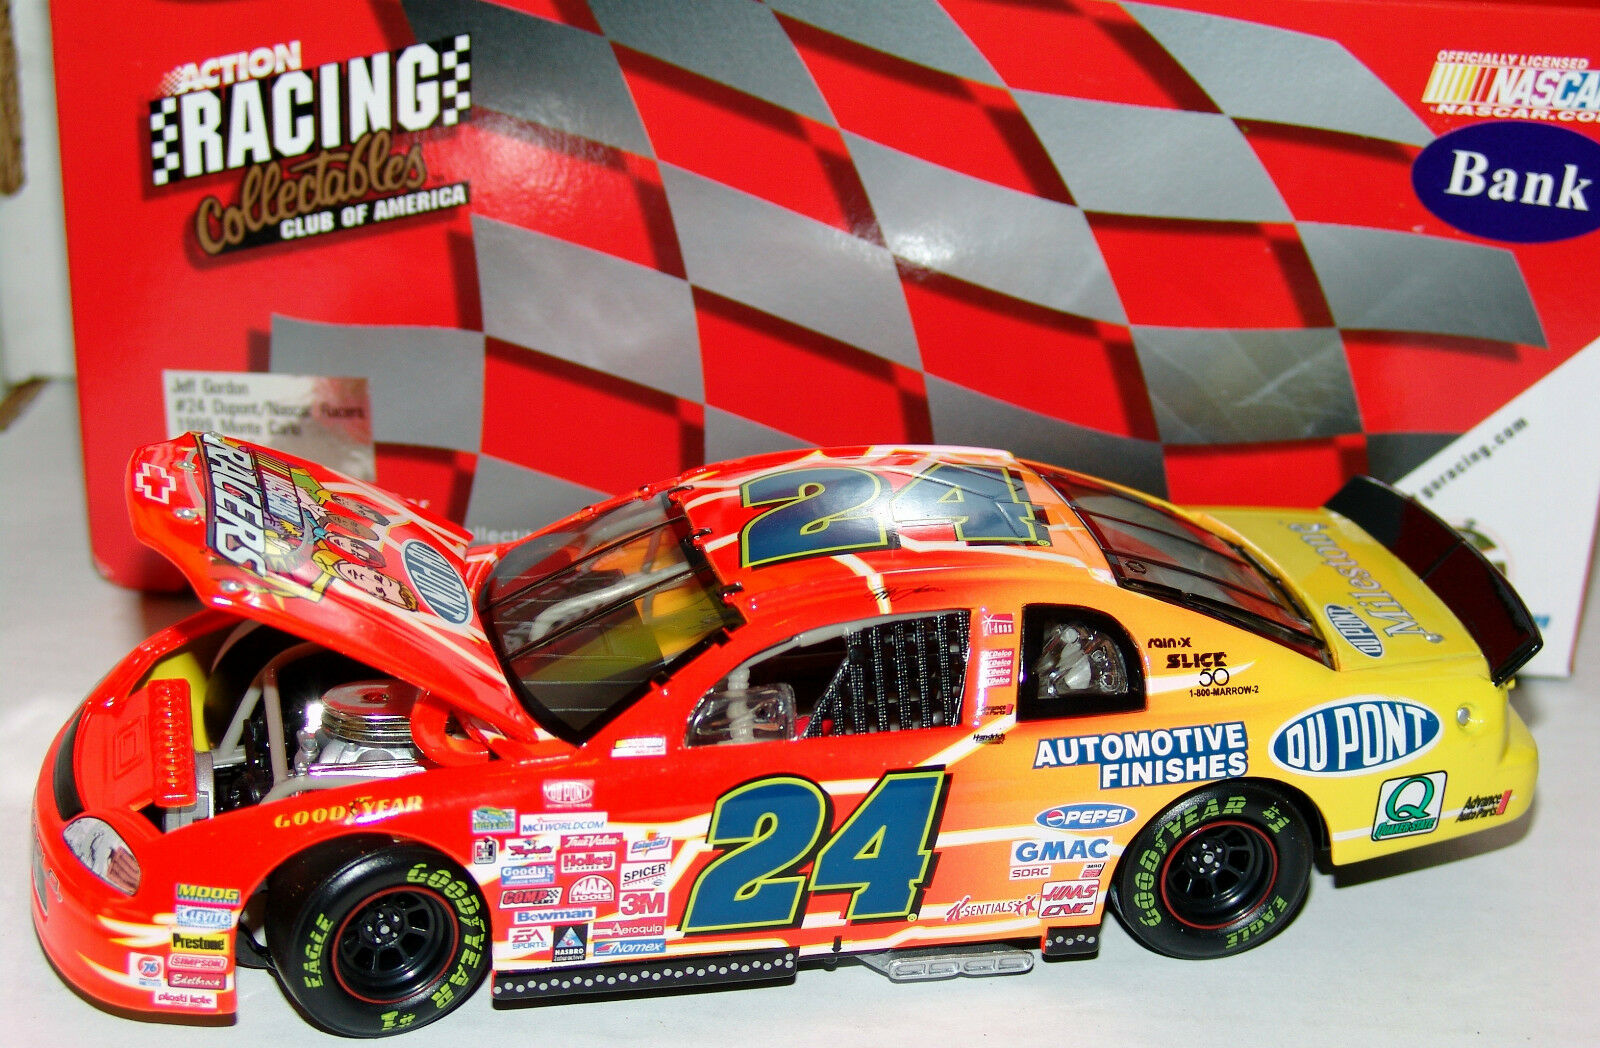 99 Jeff Gordon NASCAR Racers Chevrolet 1 24 Action Action Action RCCA Limited Edition Bank aaff63